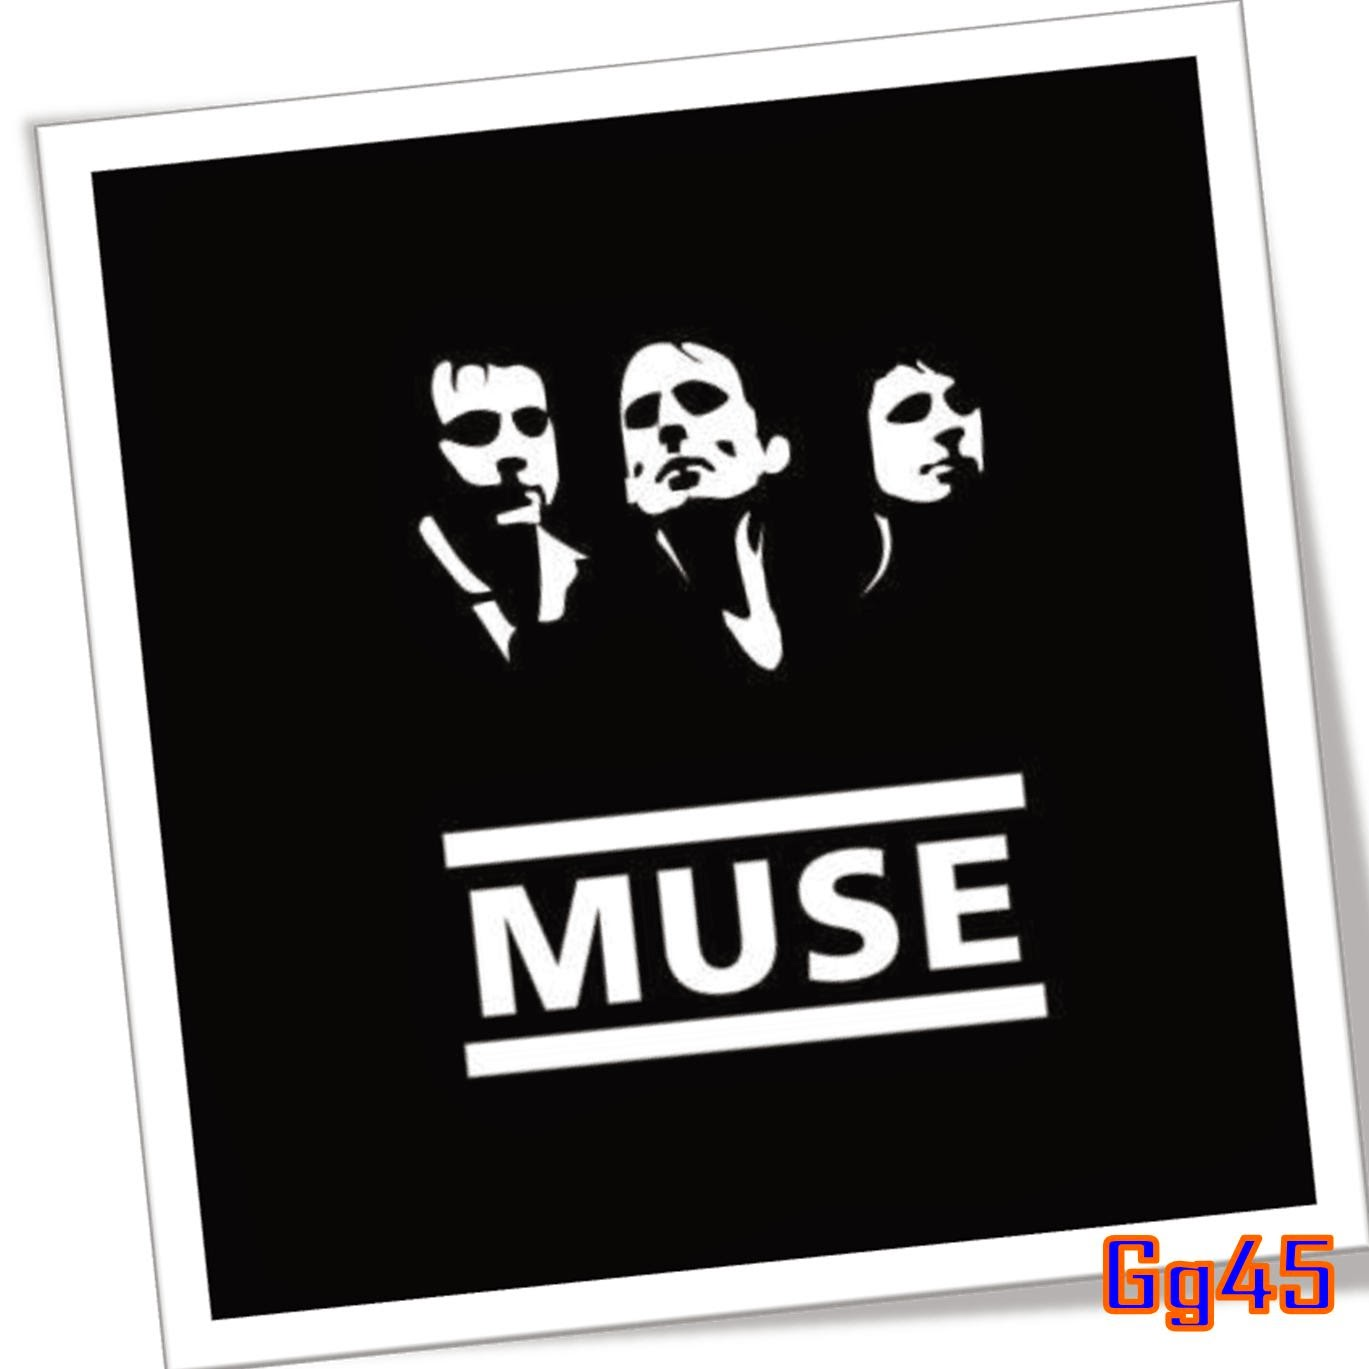 MUSE MP3 TÉLÉCHARGER HYSTERIA